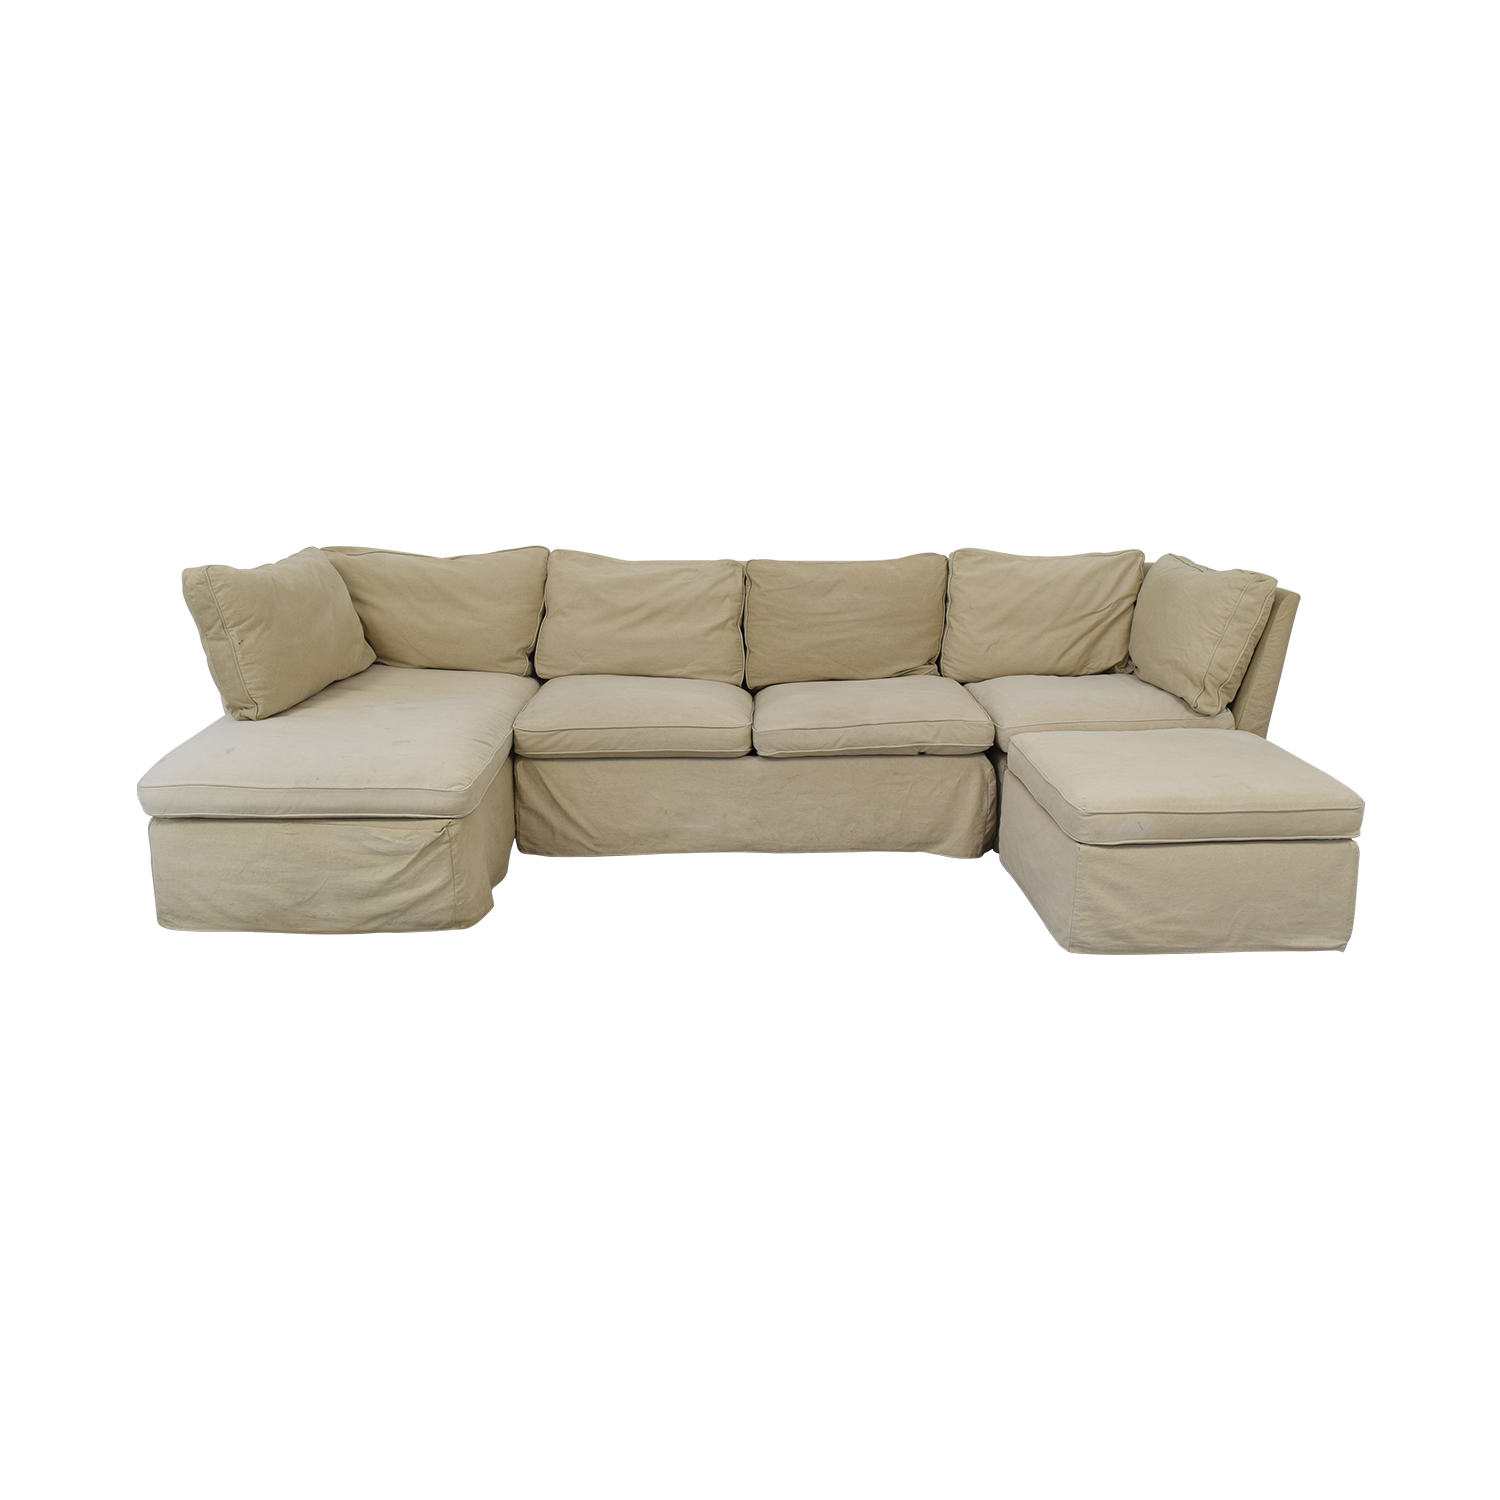 shop ABC Carpet & Home Sectional with Ottoman ABC Carpet & Home